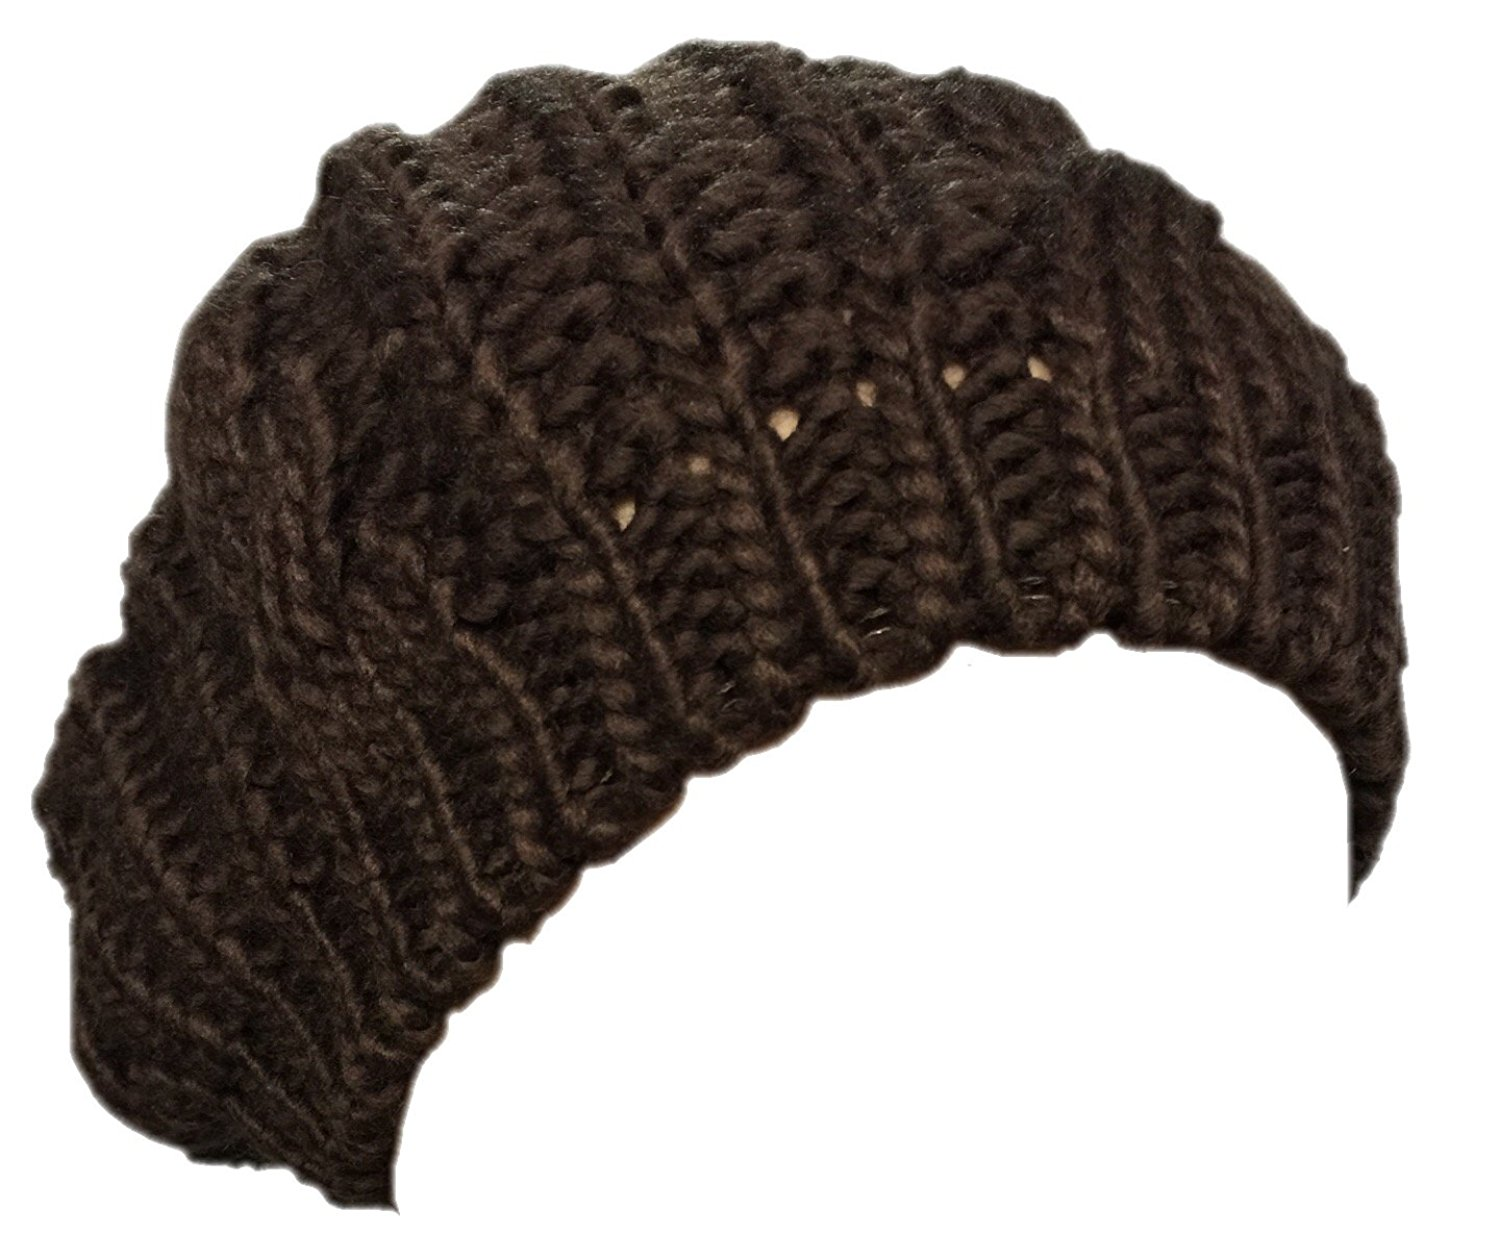 New-Arrivals-Lady-Winter-Warm-Knitted-Crochet-Slouch-Baggy-Beret-Beanie-Hat-Cap